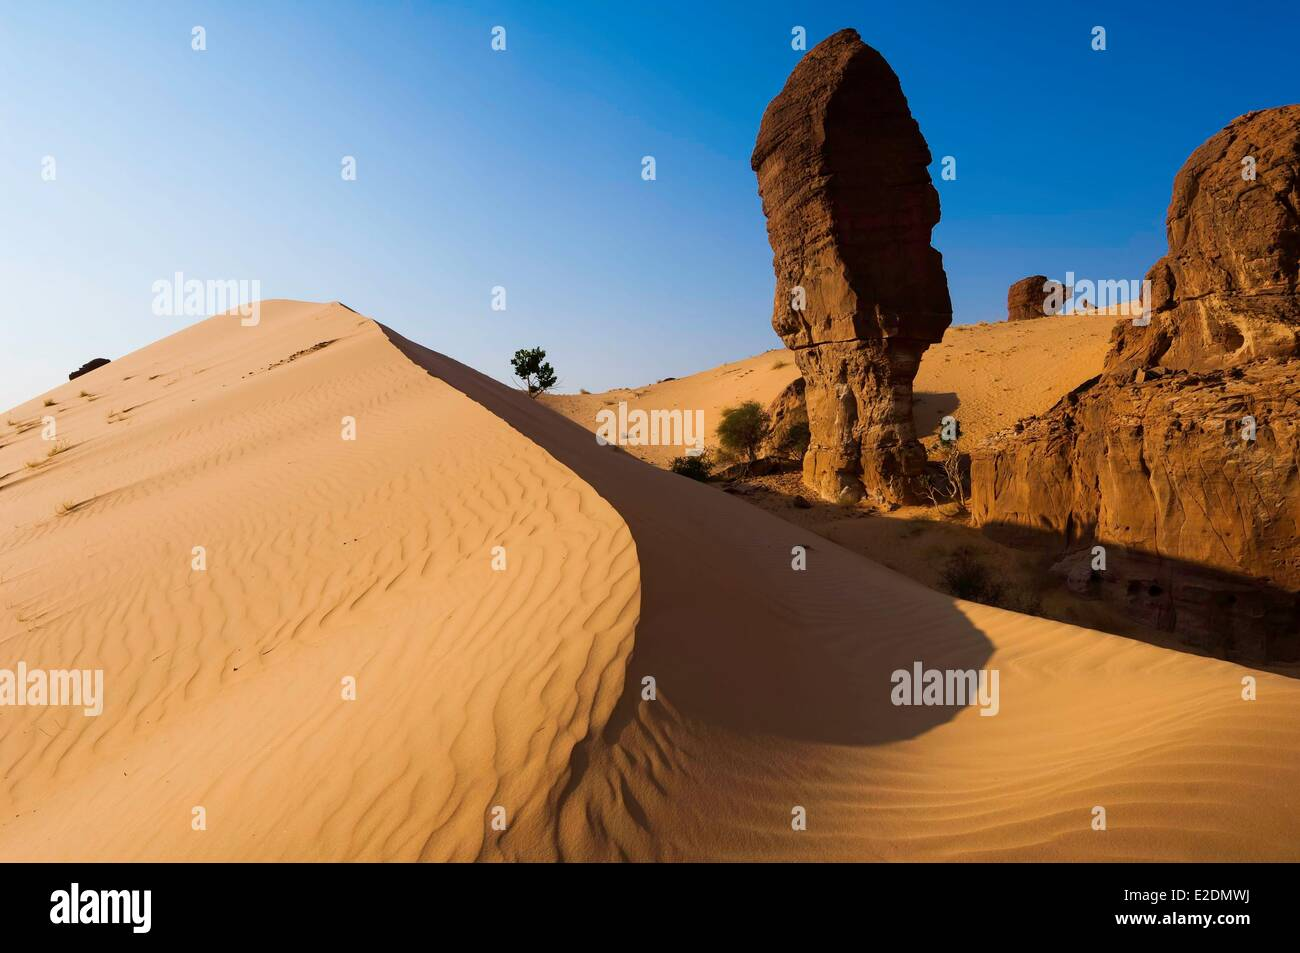 Chad Southern Sahara desert Ennedi massif Archei sector dunes and sandstone monoliths - Stock Image